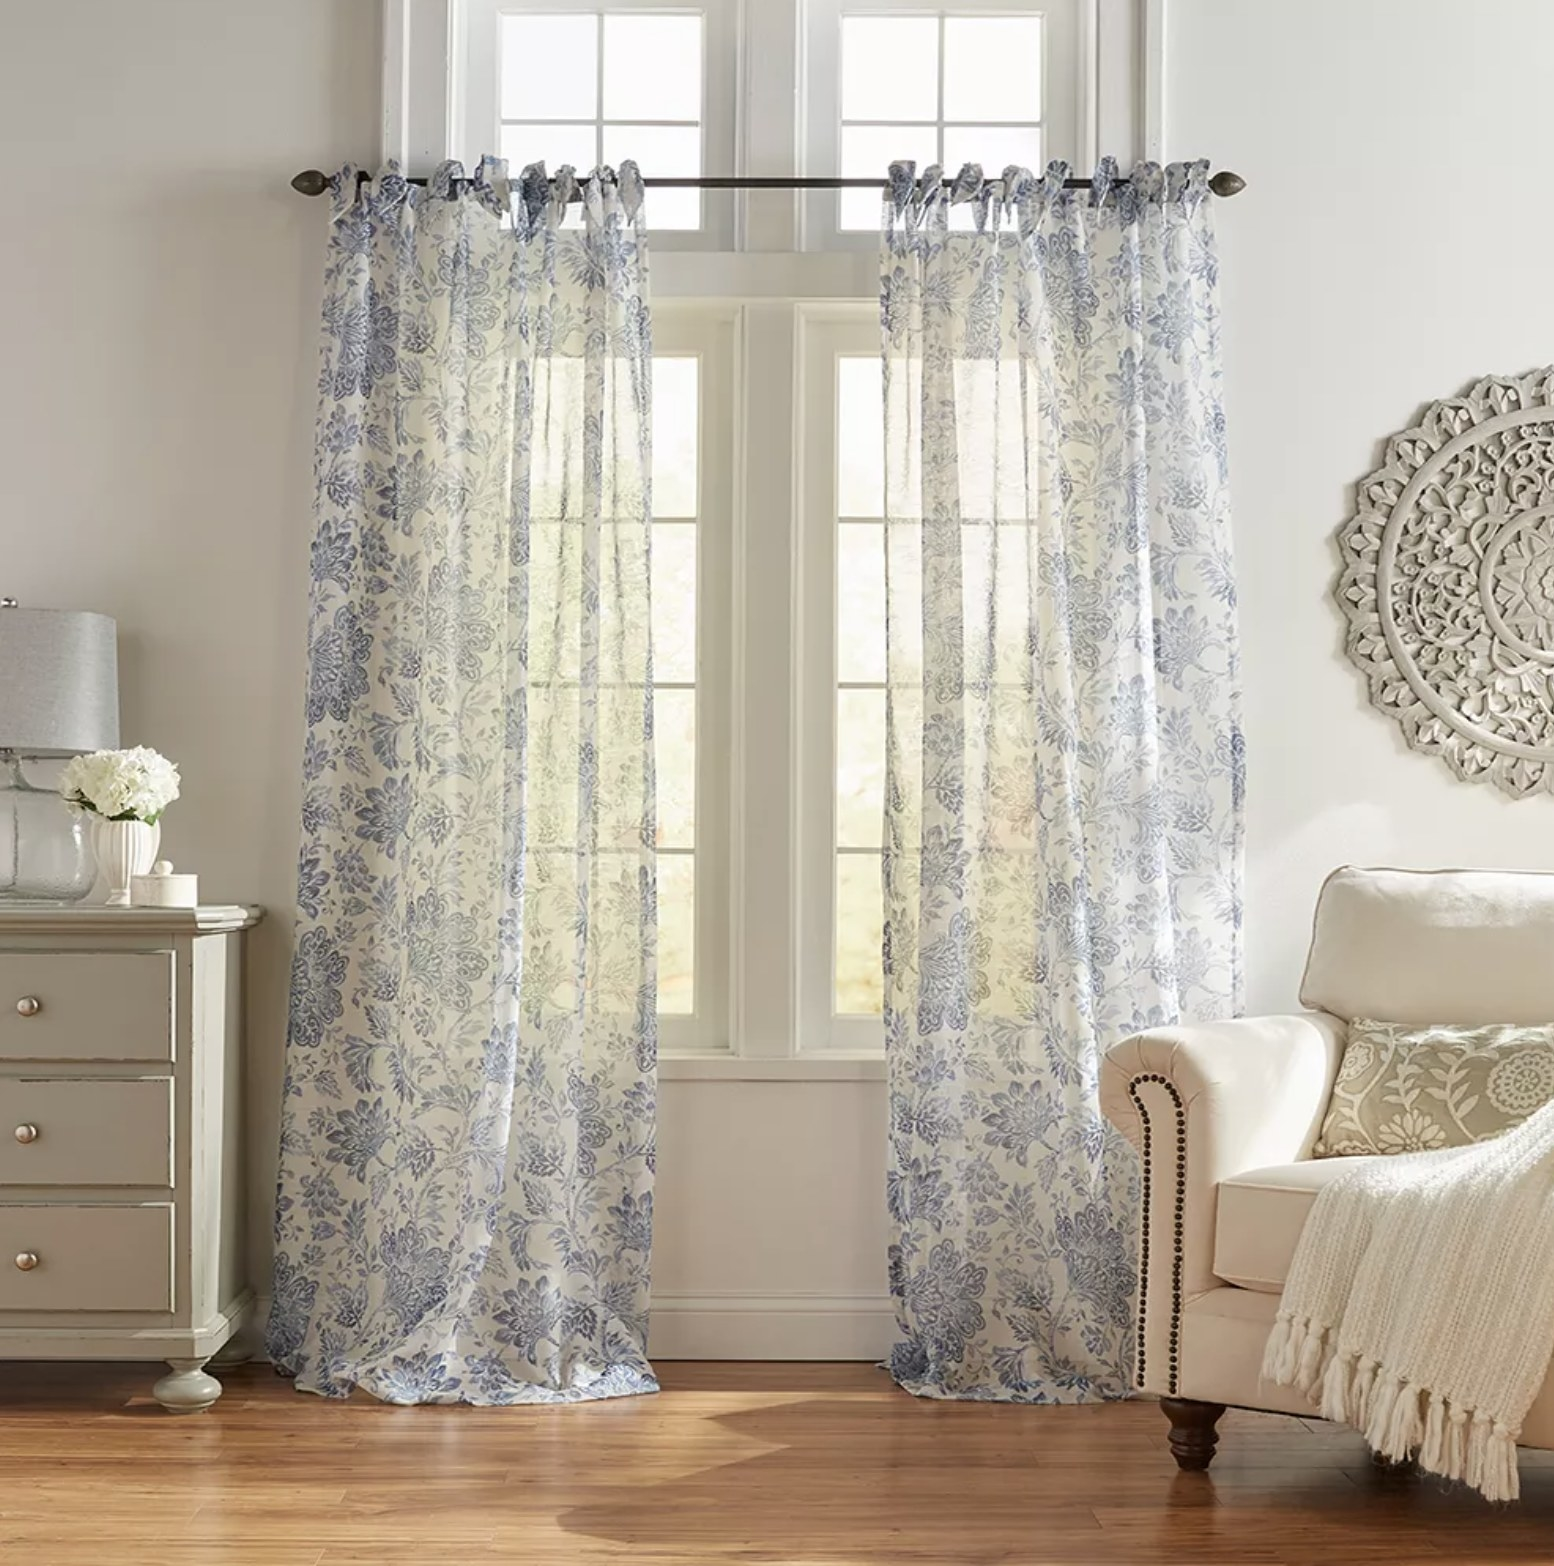 White see-through curtains with blue floral detailing